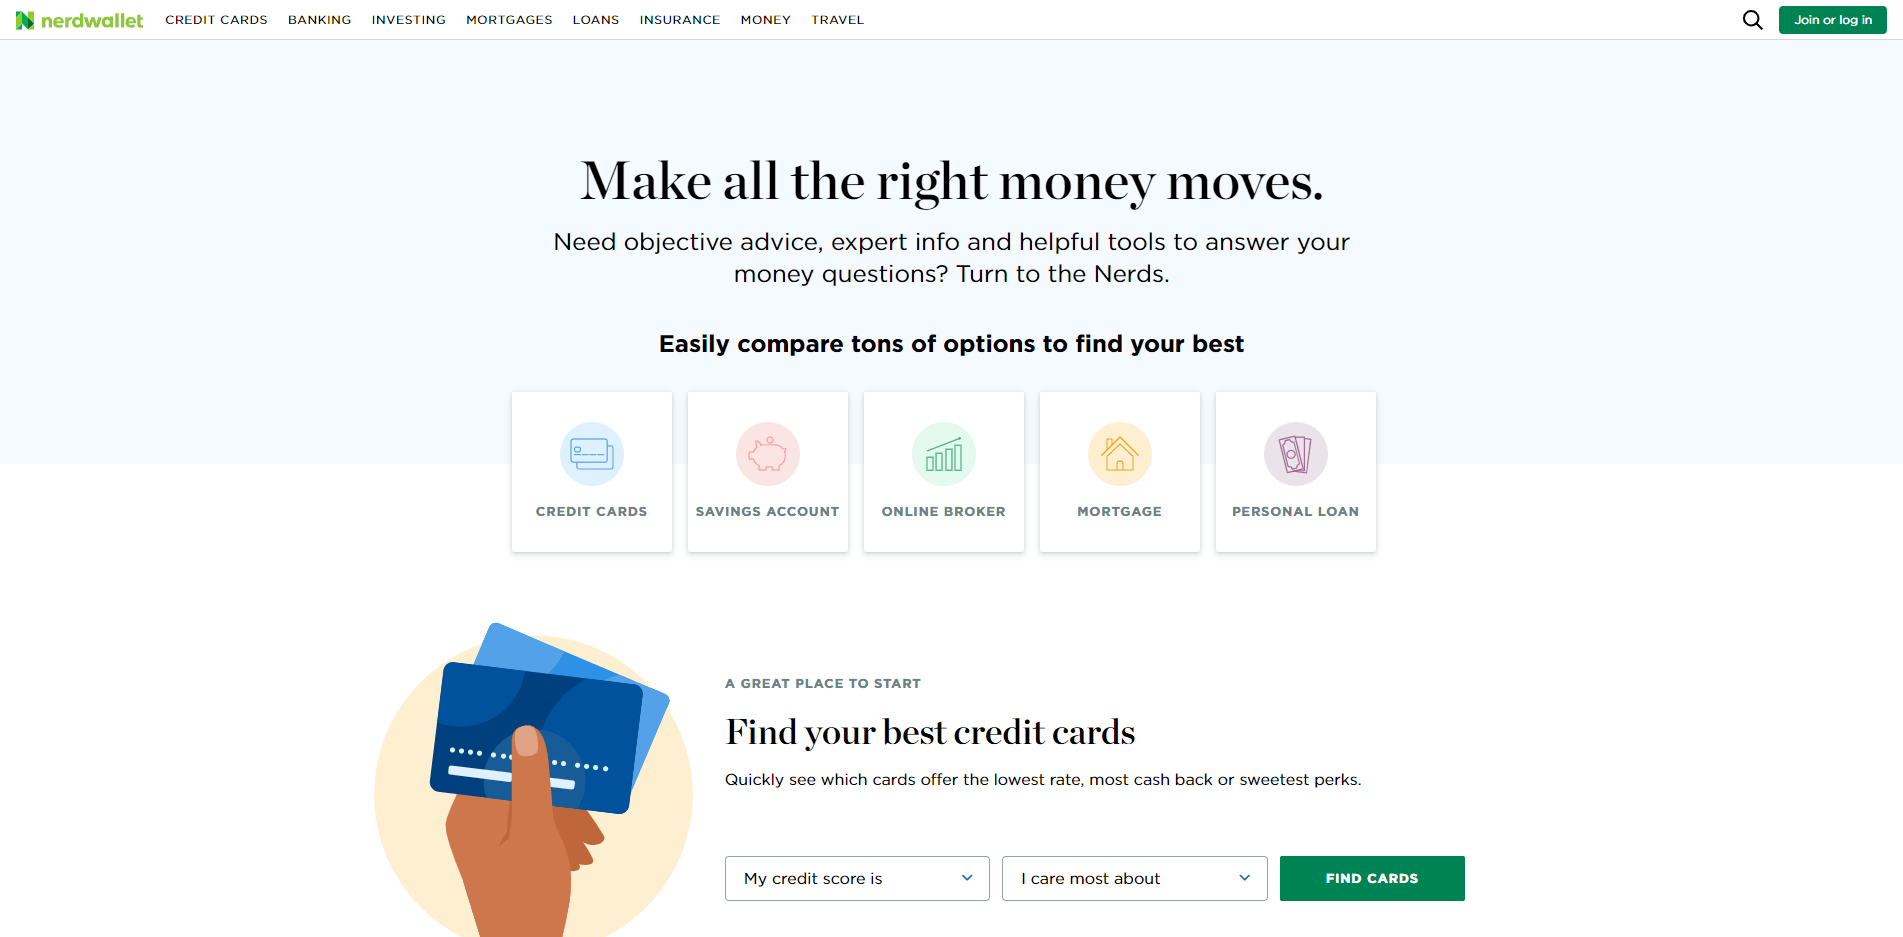 Nerdwallet homepage August 2019